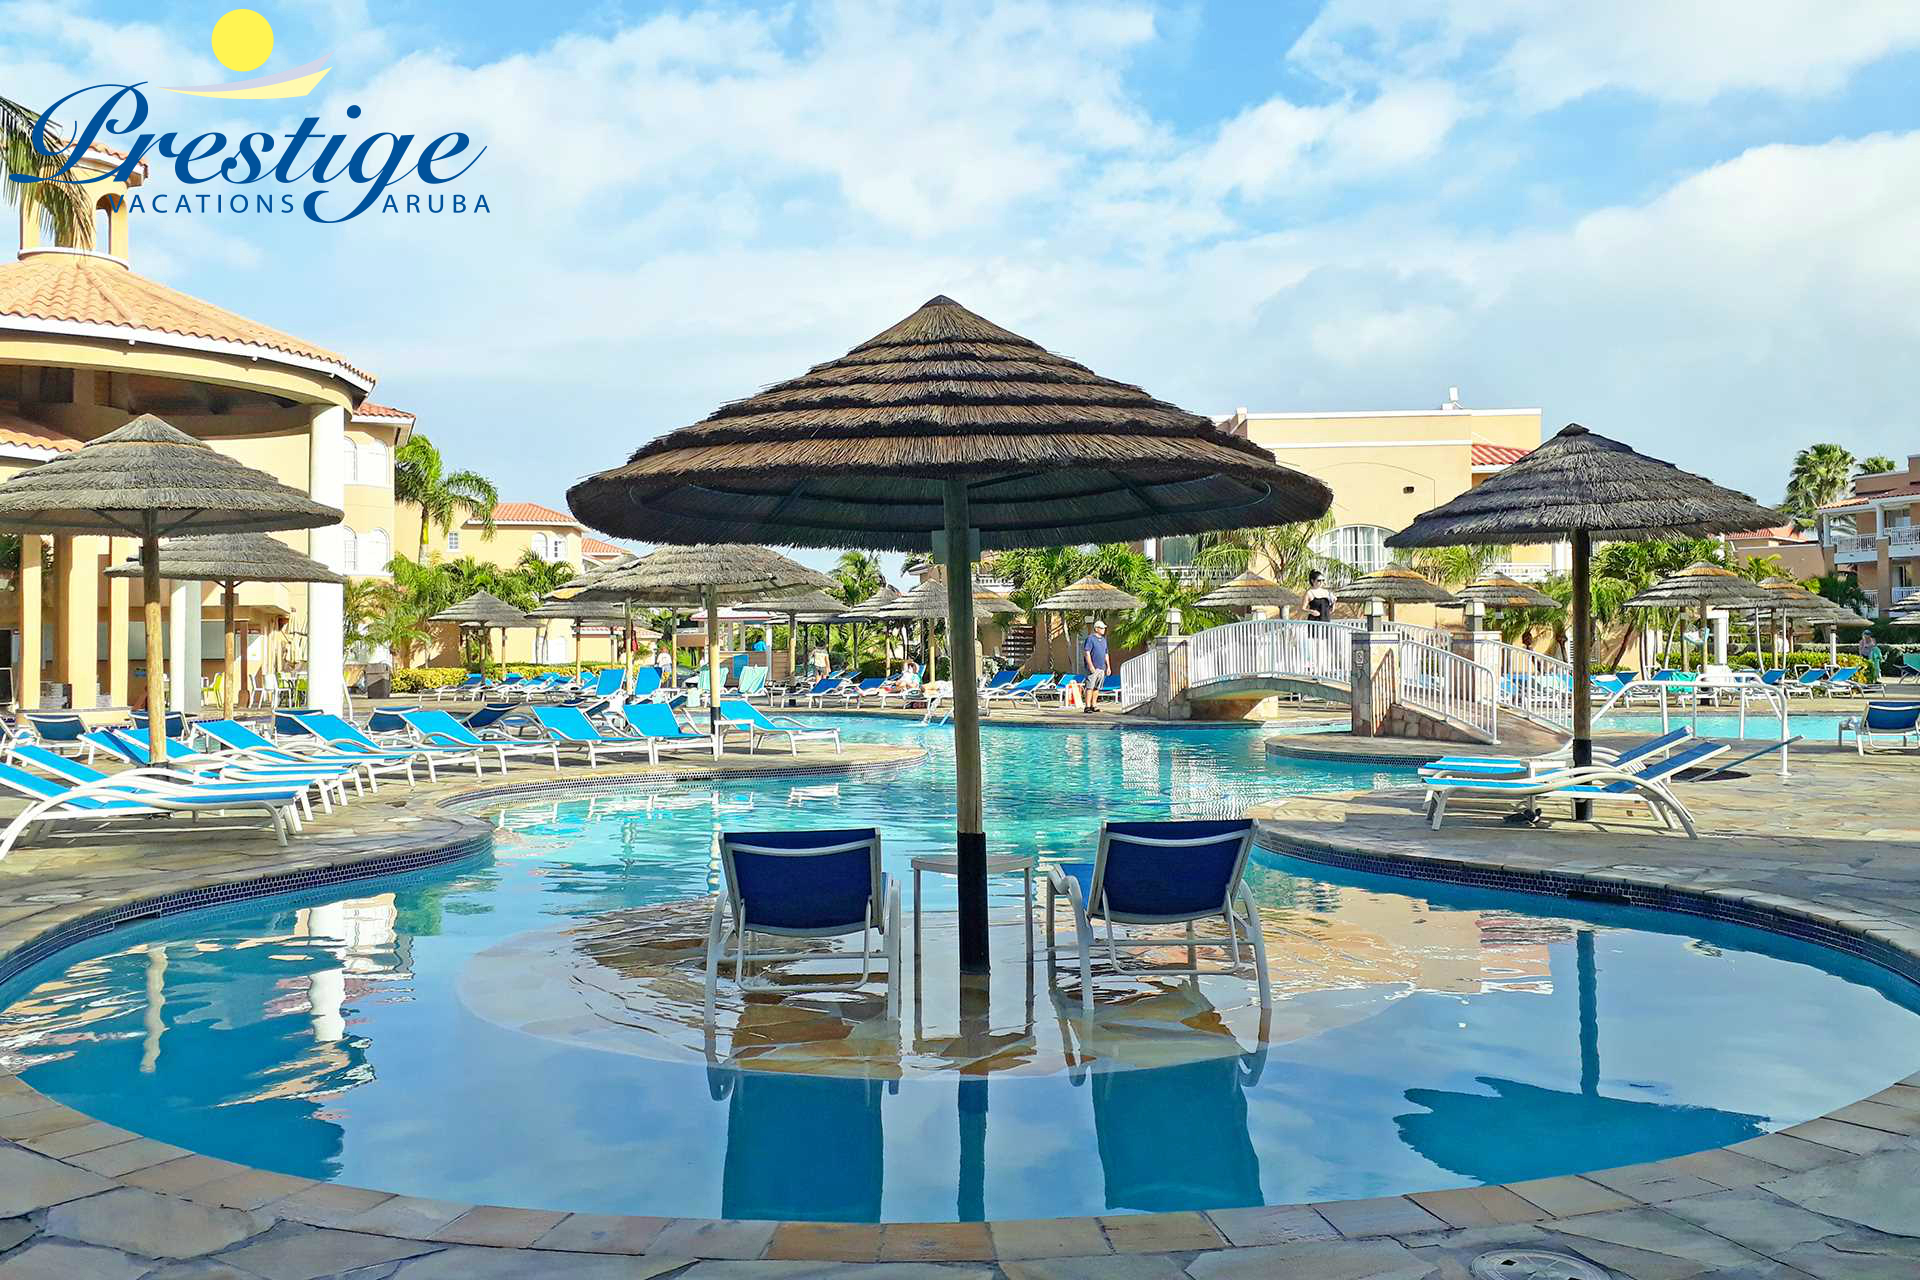 Divi resort main swimming pool area with palapas and lounge chairs for use by all guest